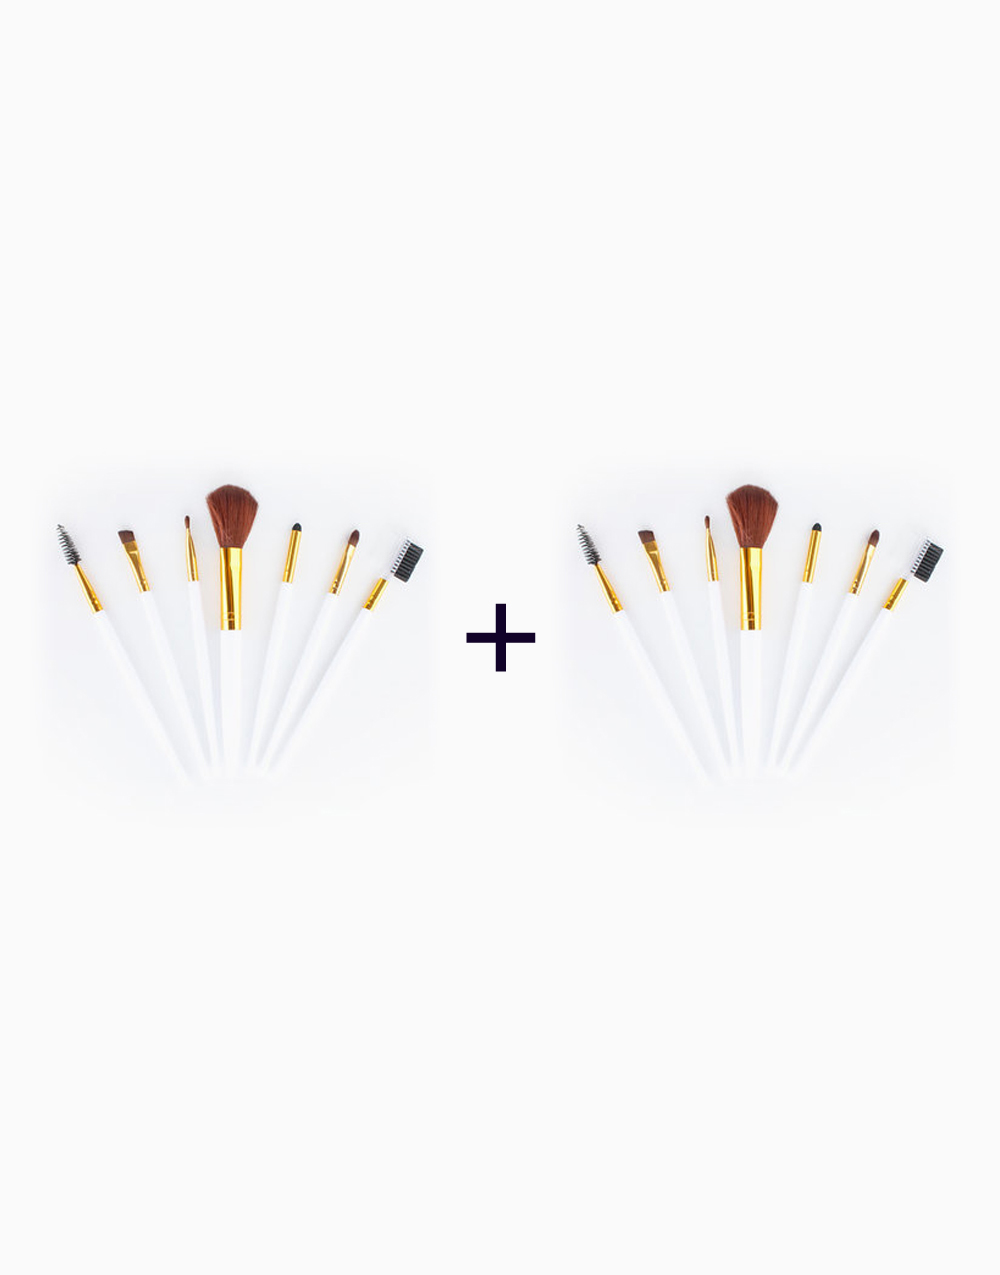 7-Piece Travel Brush Set (Buy 1, Take1) by PRO STUDIO Beauty Exclusives | White